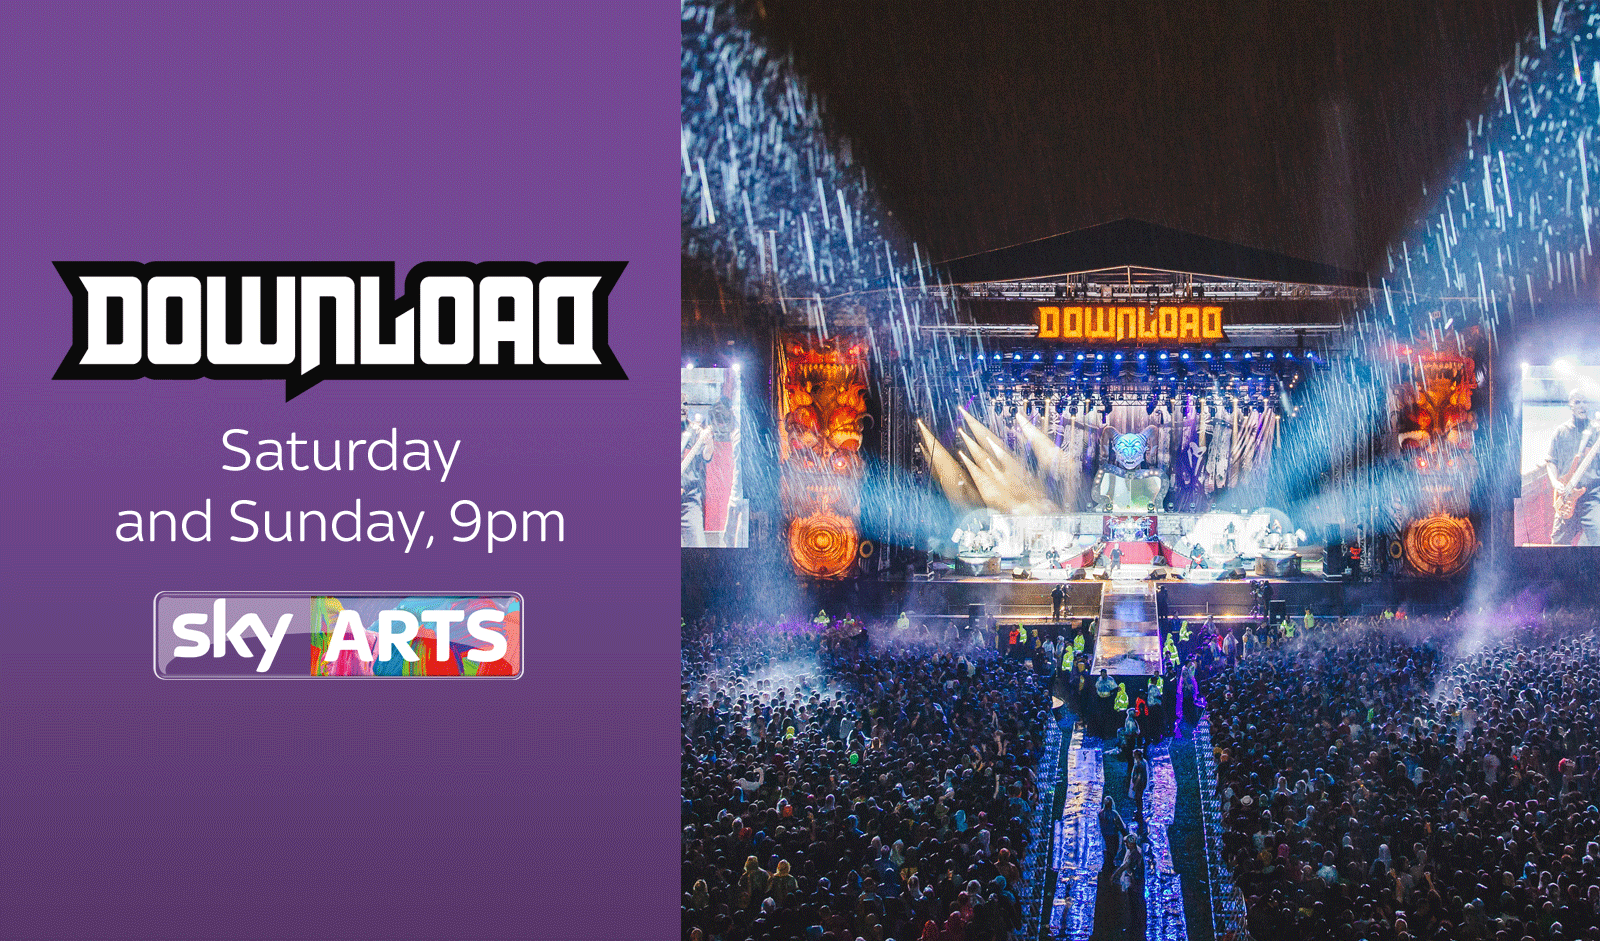 @BillyIdol is live as part of our @DownloadFest highlights - this weekend on @skyarts http://t.co/cuZp3zehoe